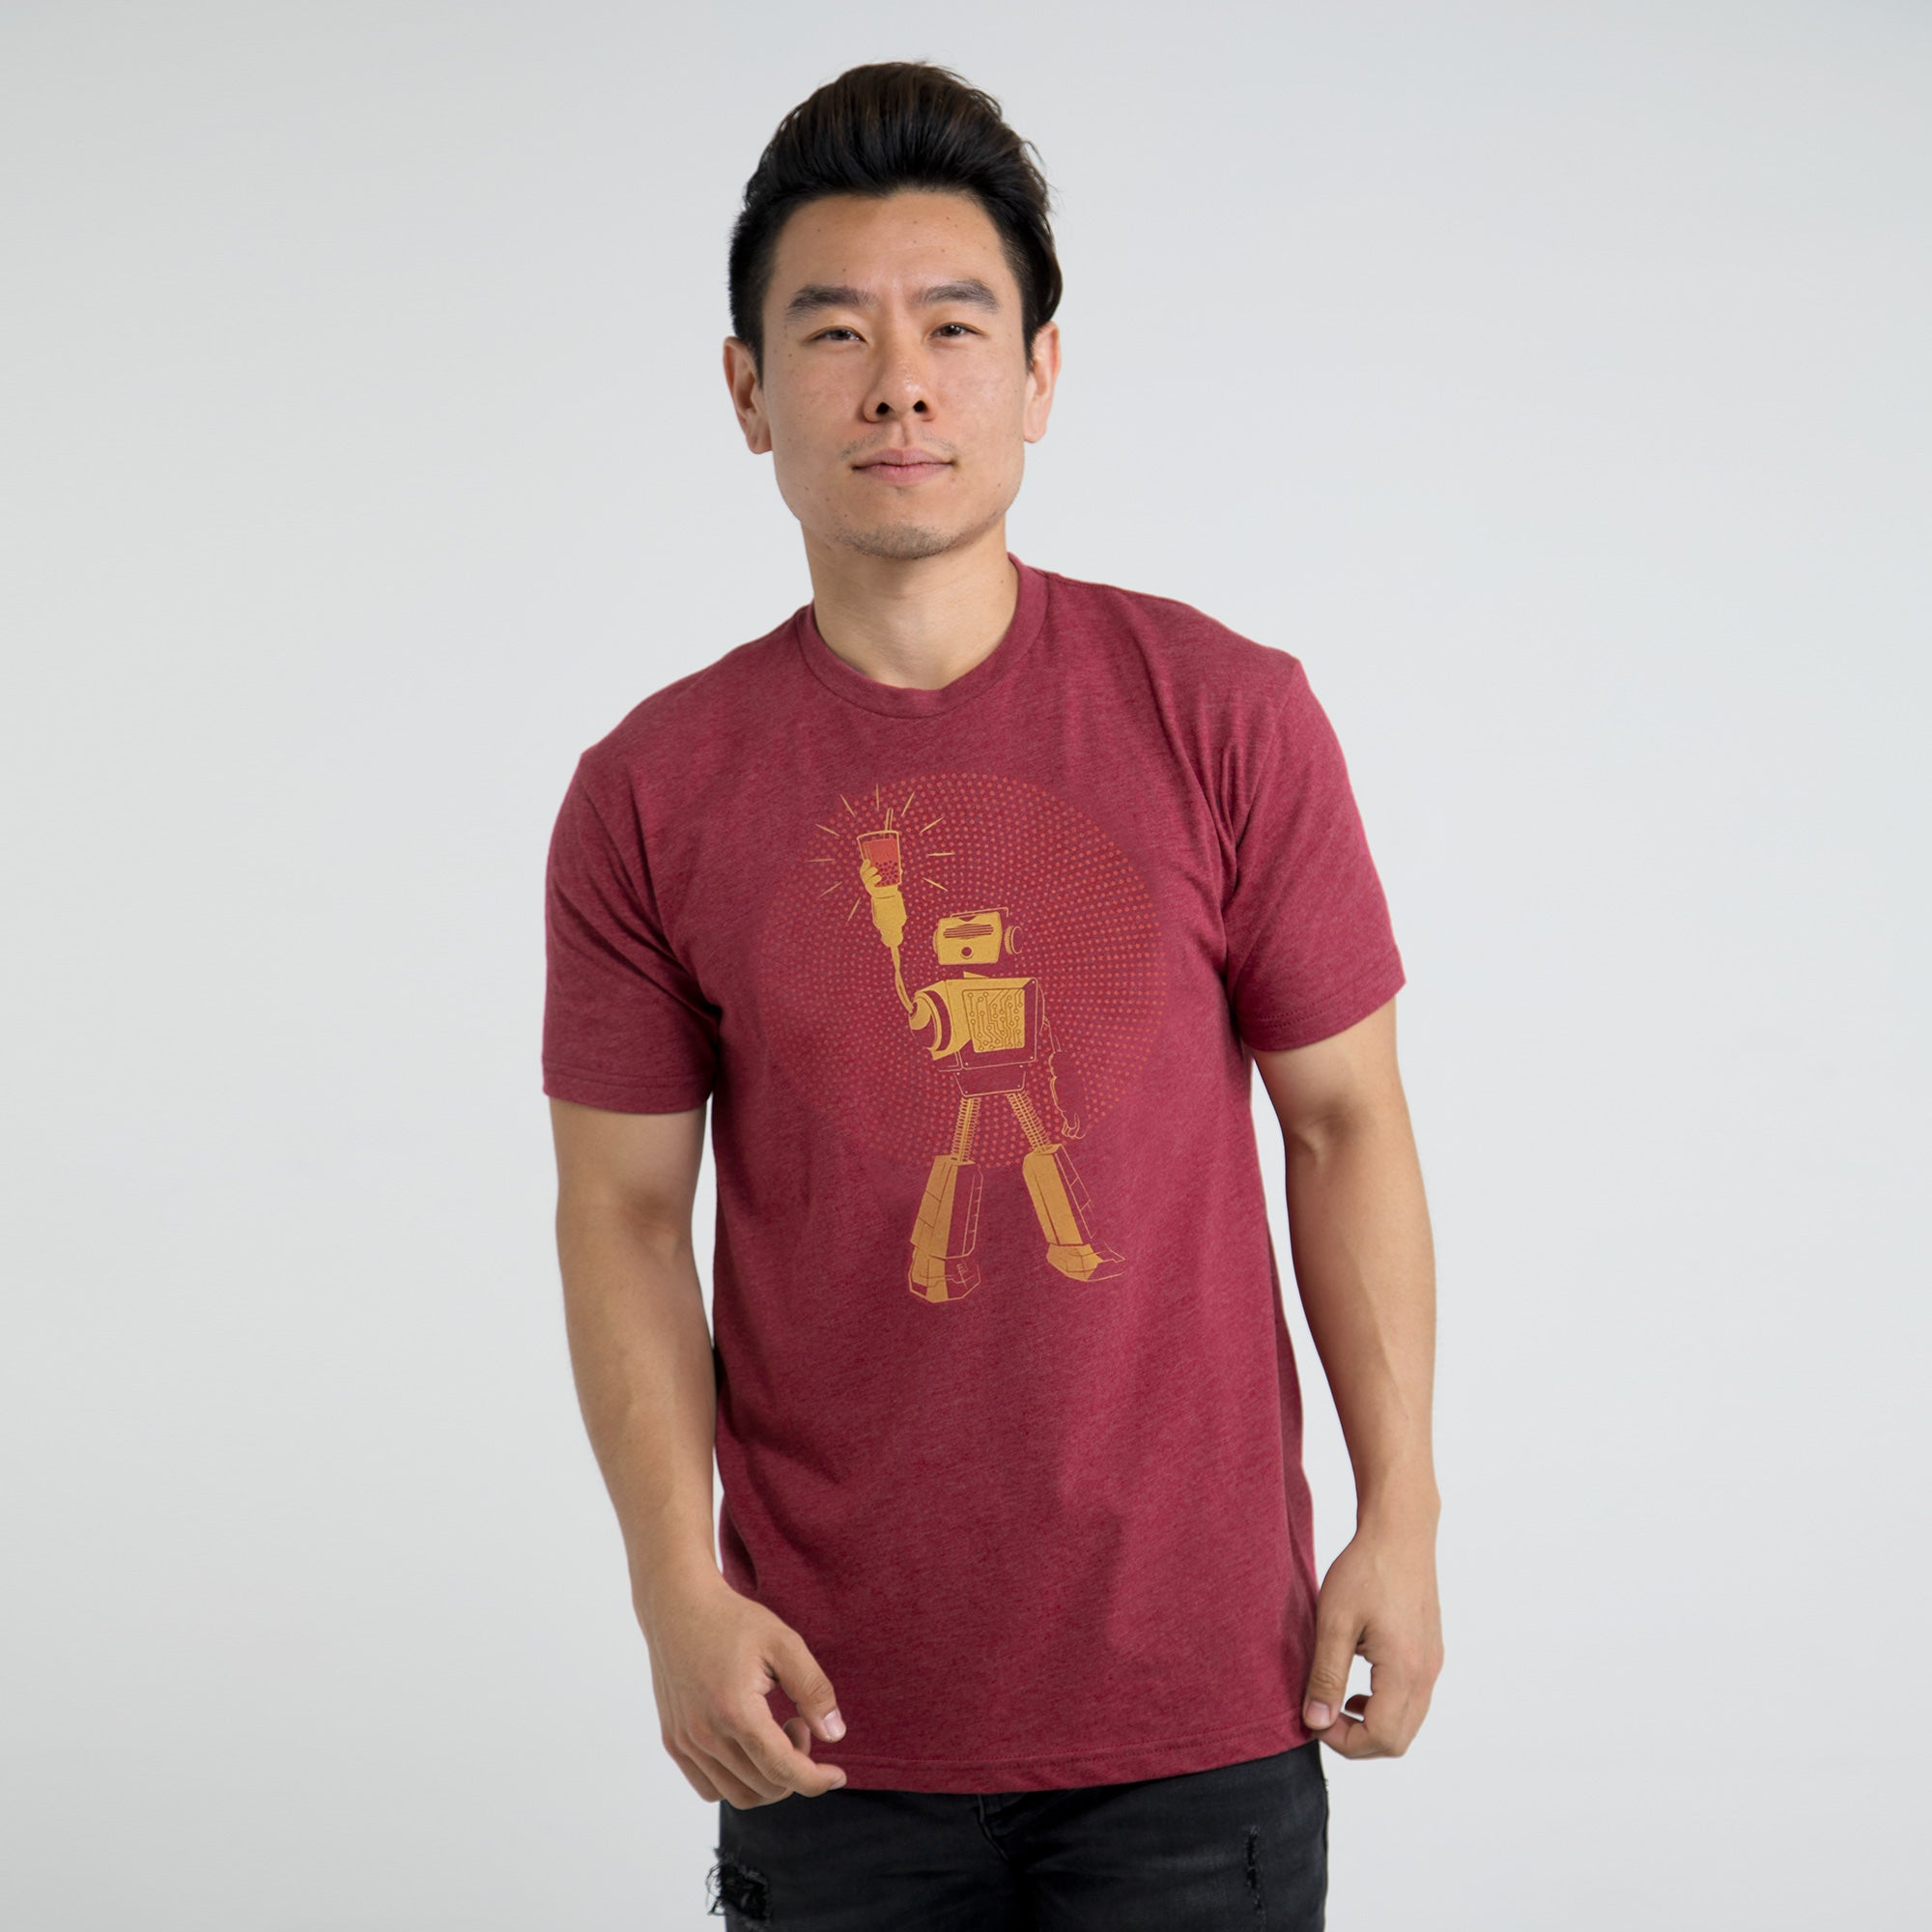 Boba Bot T-shirt for Boba Tea Lovers and Robotics Engineers